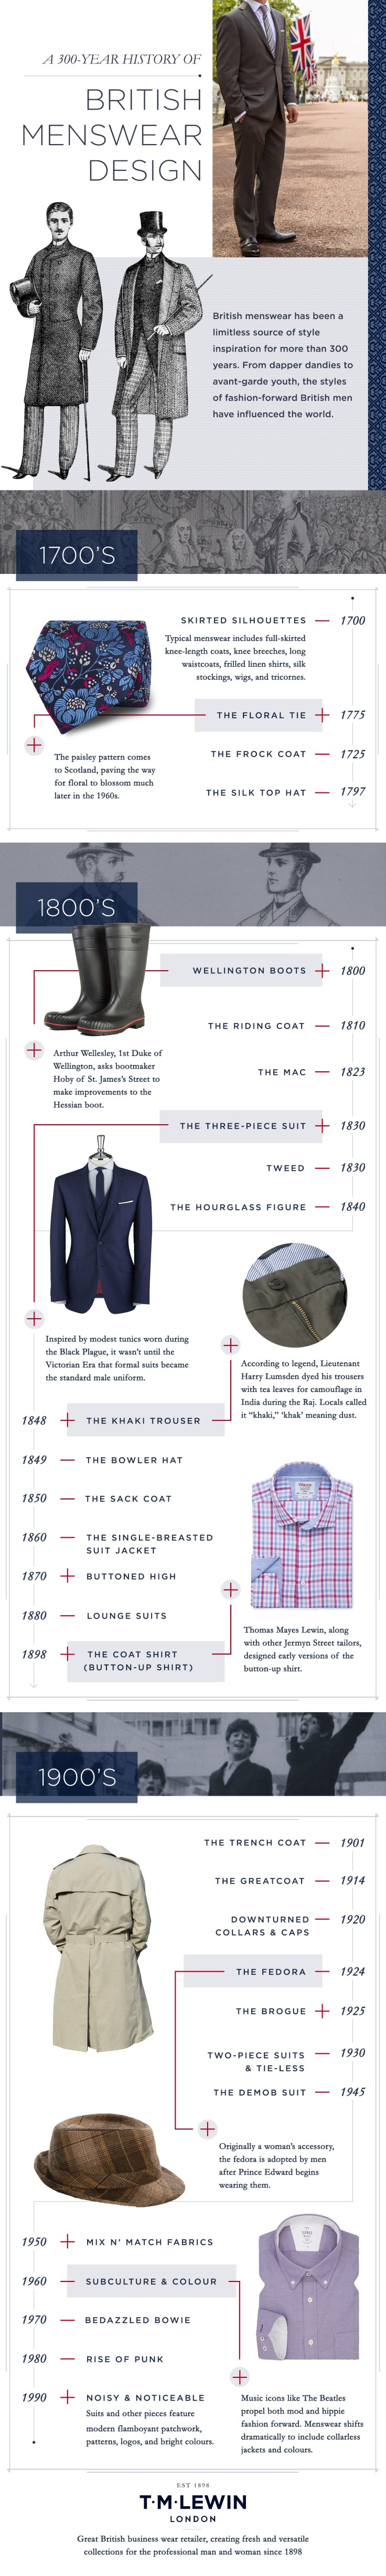 A brief history of menswear by T.M.Lewin